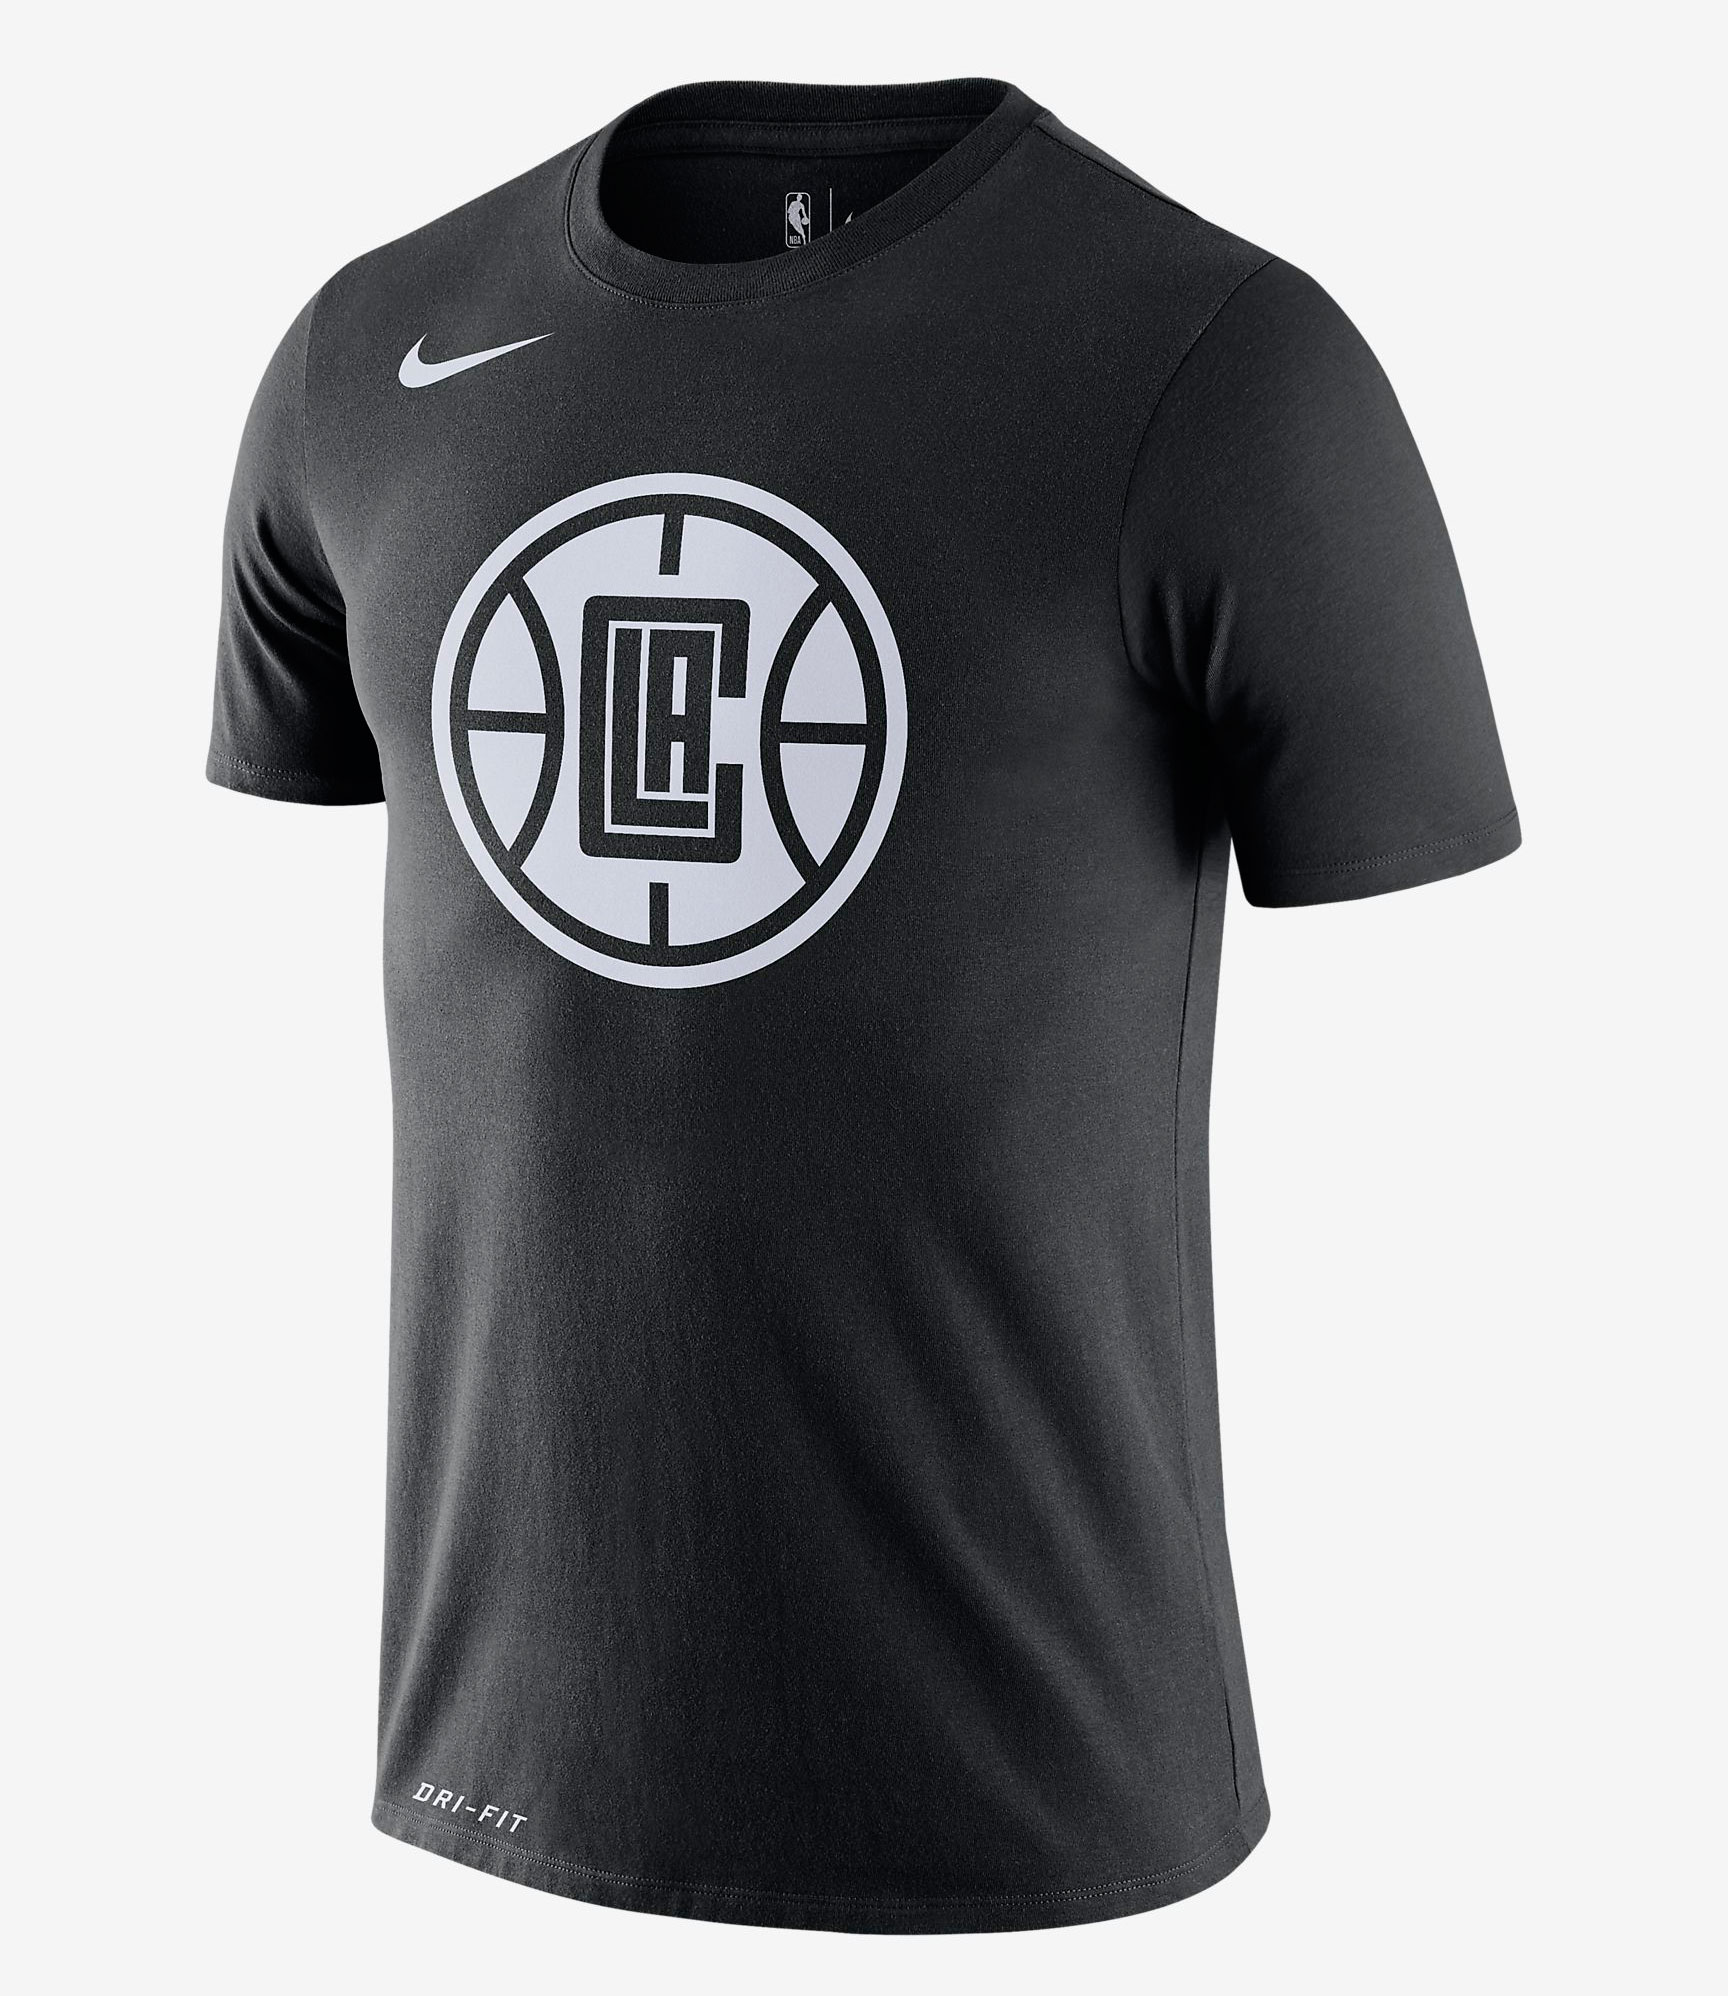 nike-pg-4-black-white-la-clippers-tee-shirt-1